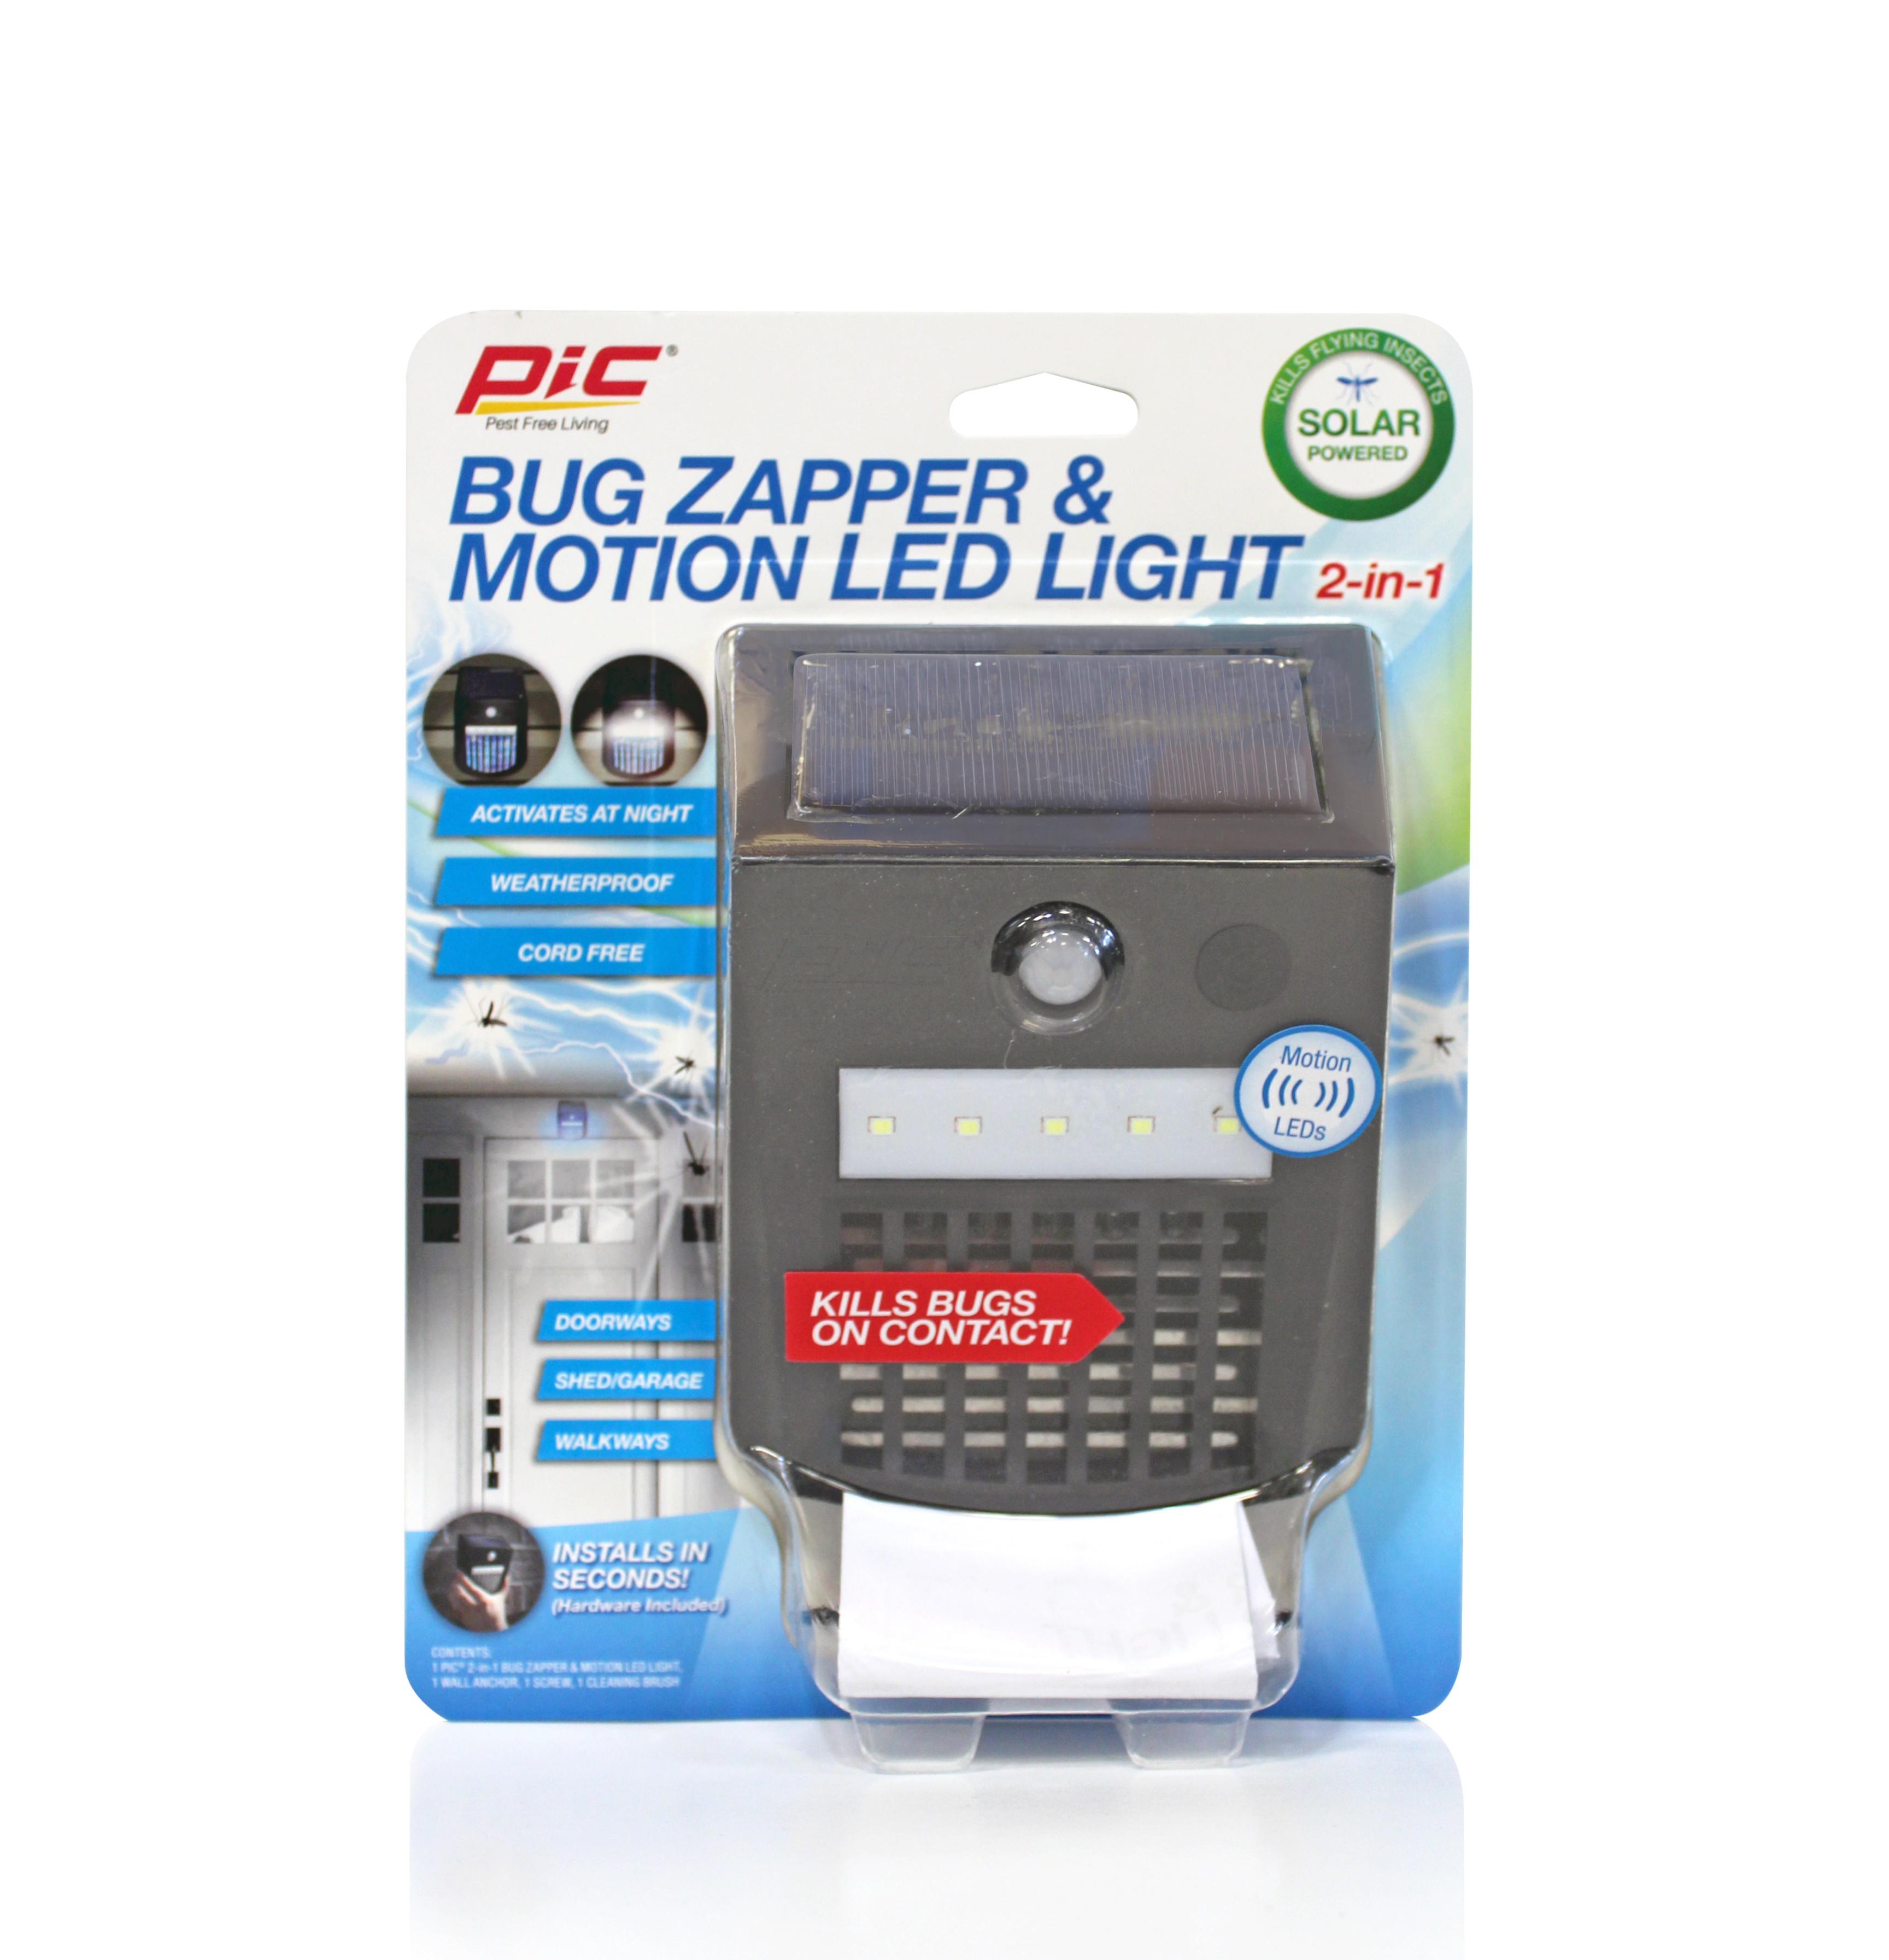 Powered Pest Control Products | Bug Zappers, Flying Traps